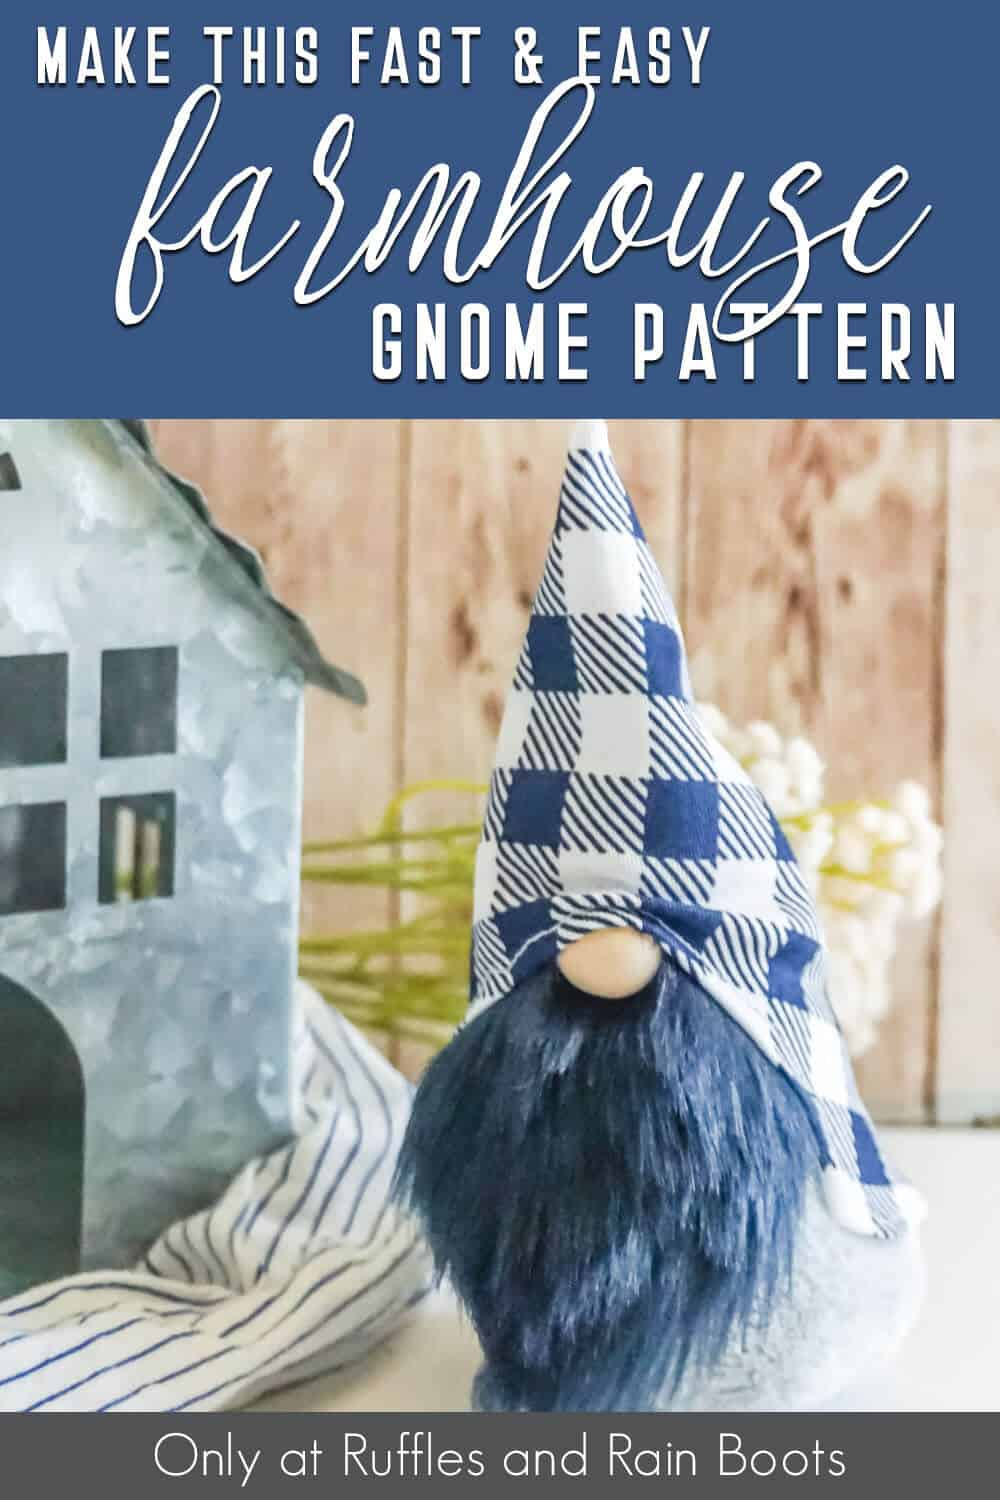 easy farmhouse gnome sewing pattern with text which reads make this fast and easy farmhouse gnome pattern